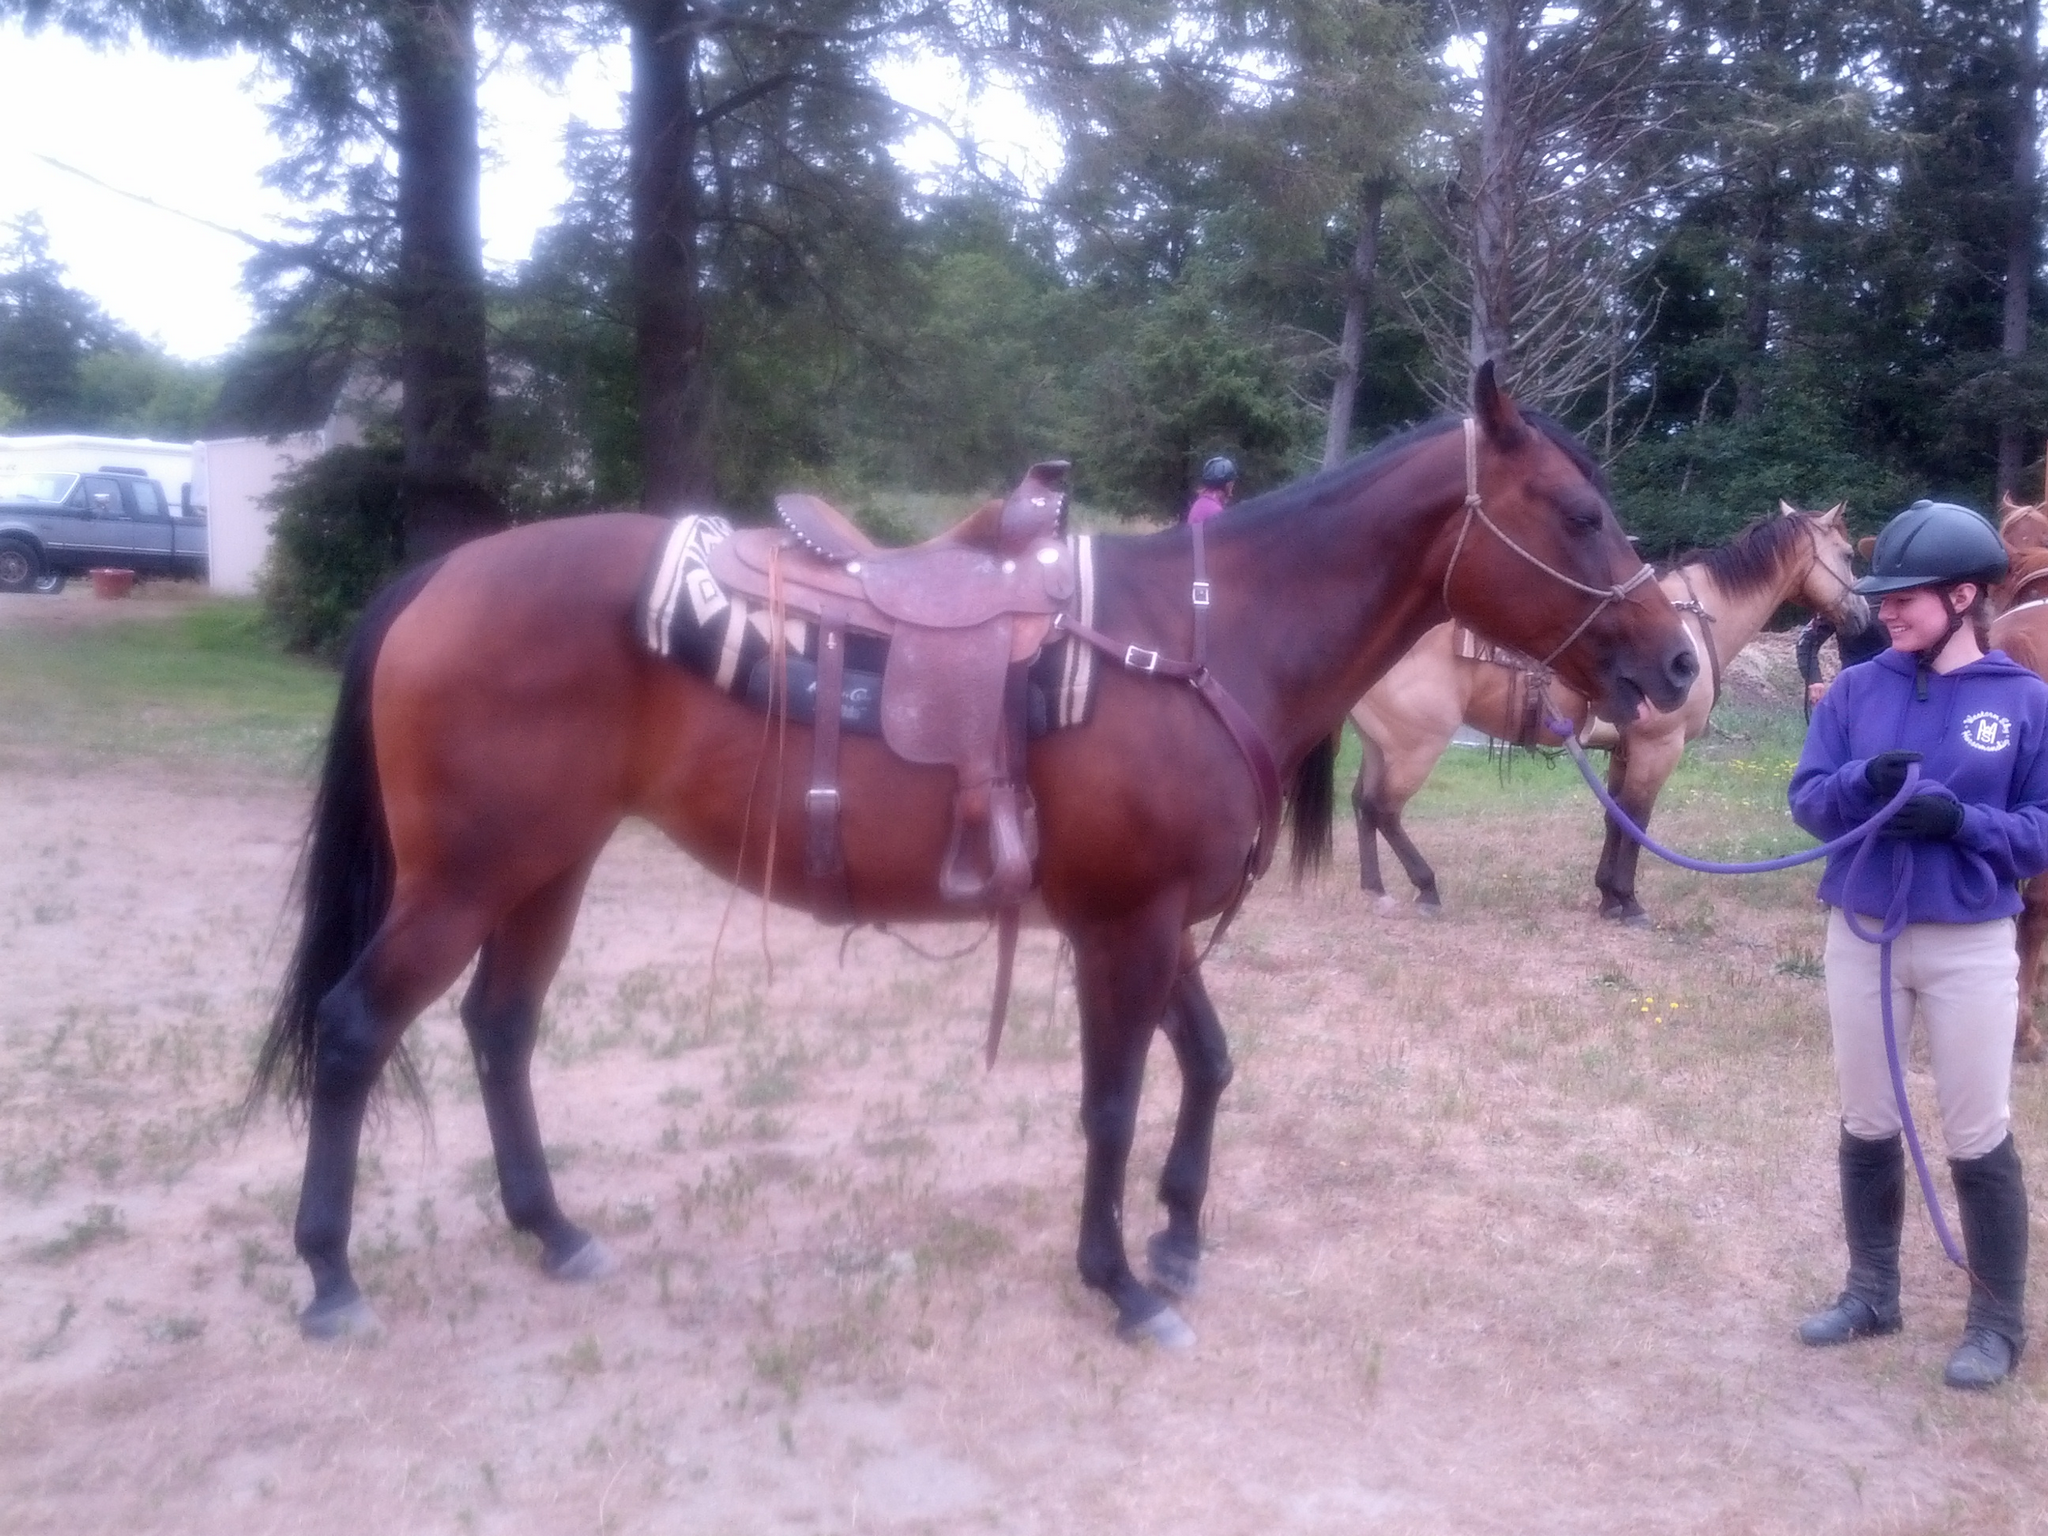 Photos of The Horses 8.21.14